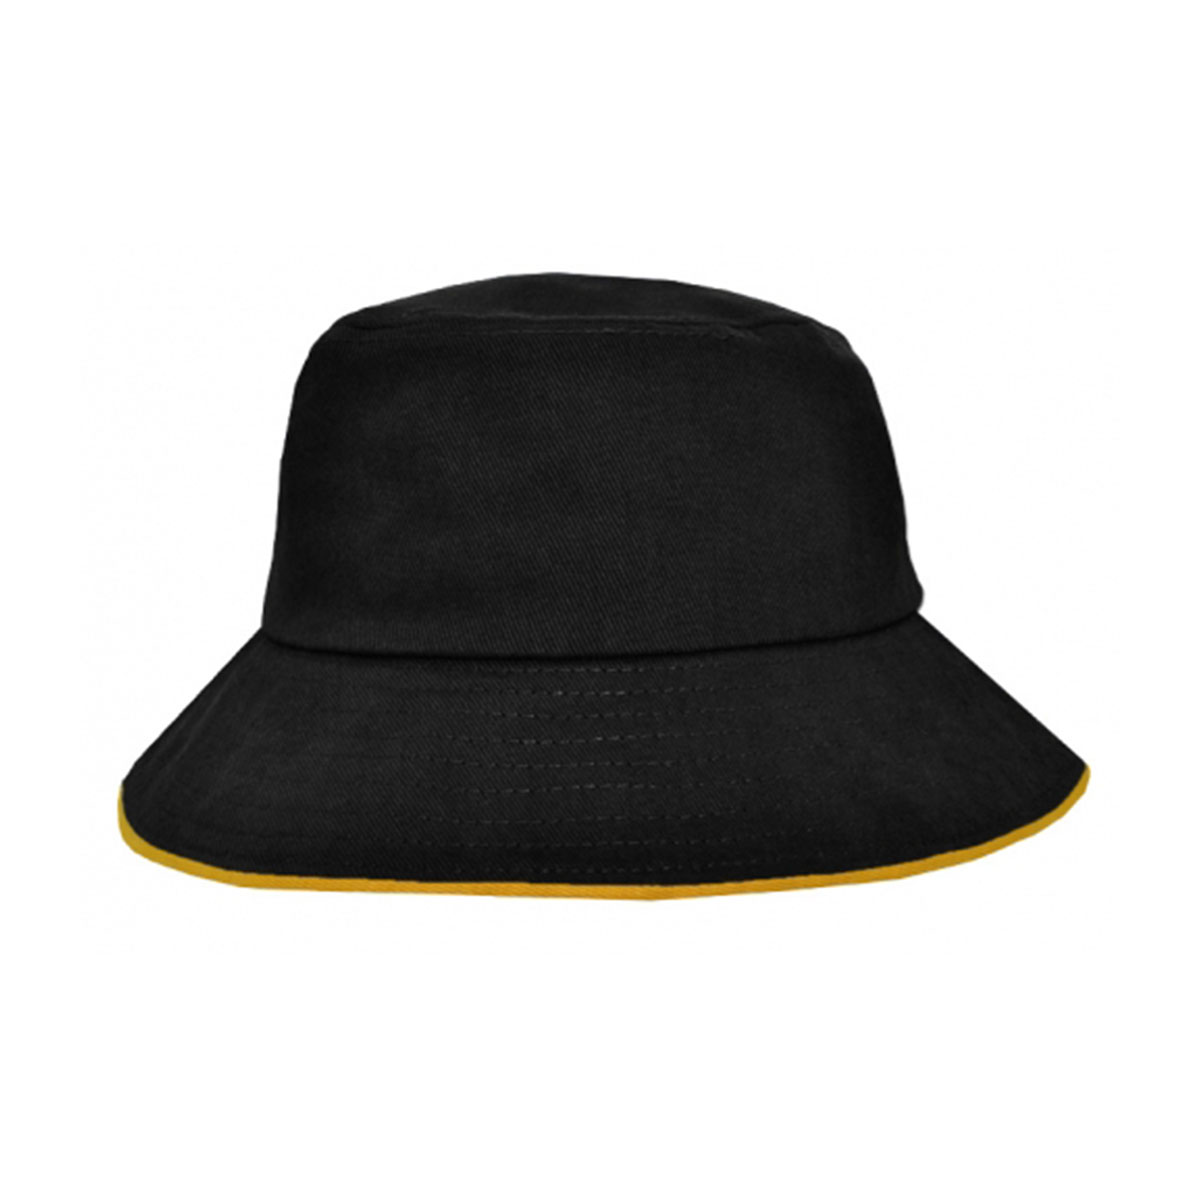 Bucket Hat Sandwich Design-Black / Gold